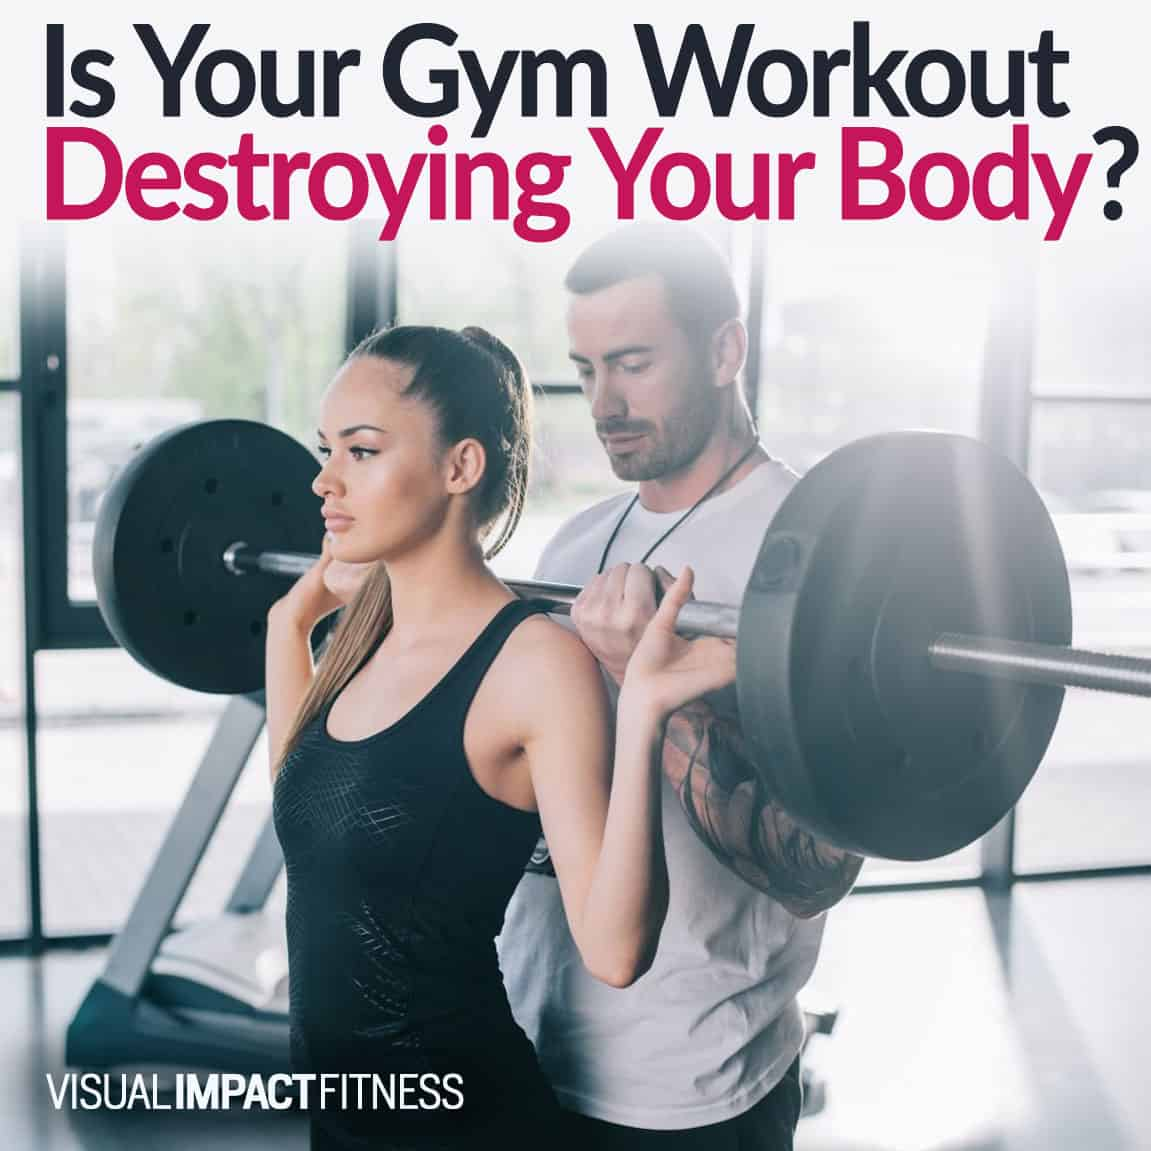 Is Your Gym Workout Destroying Your Body?